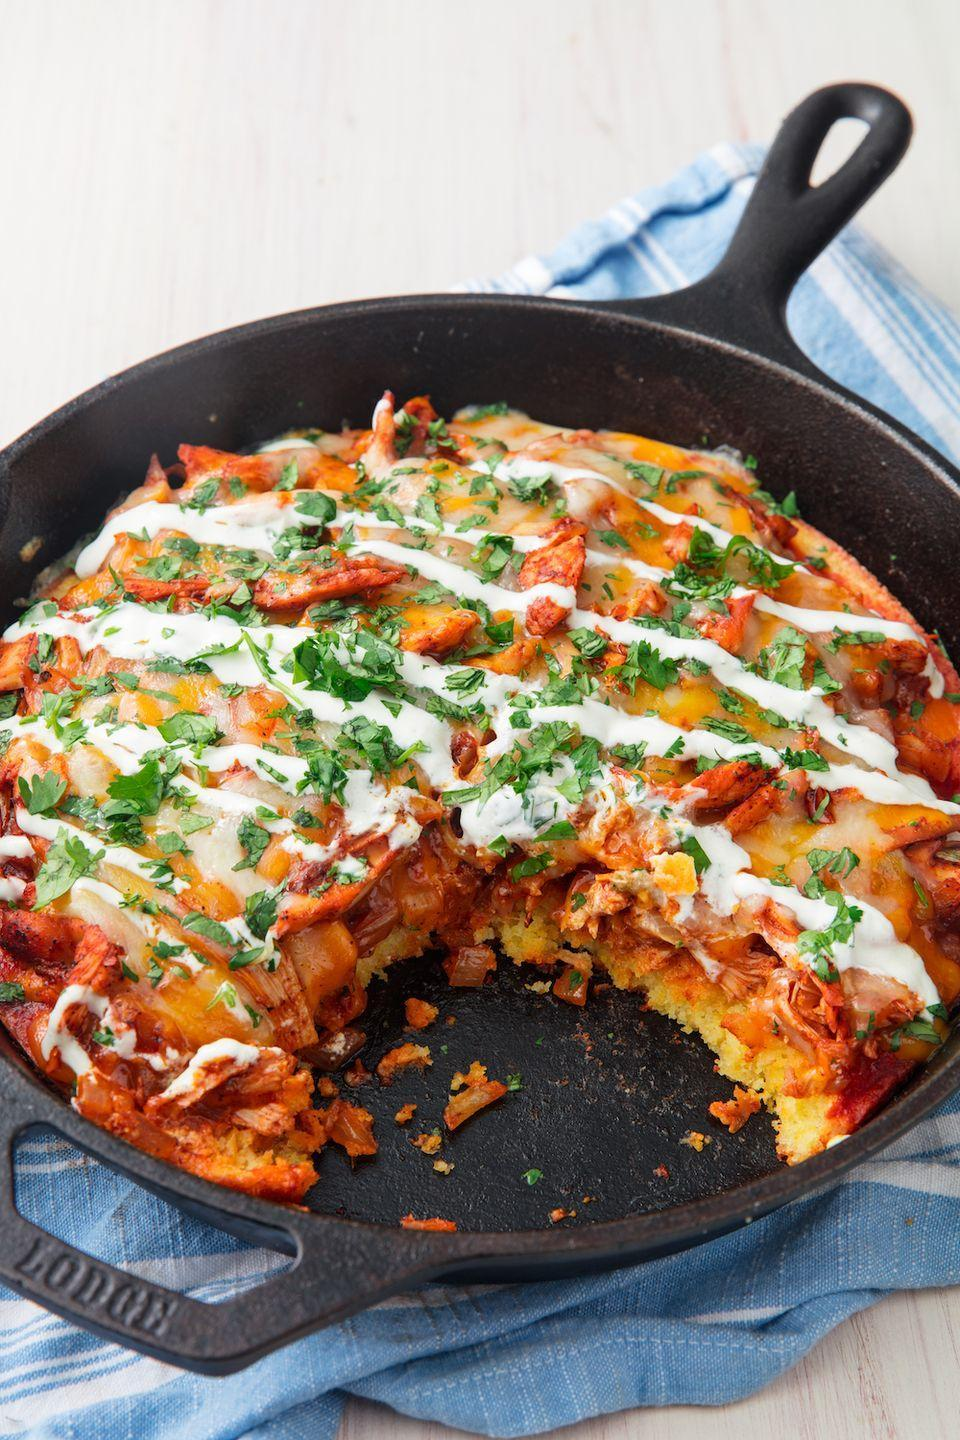 """<p>Hot take: Cornbread is the best bread.</p><p>Get the recipe from <a href=""""https://www.delish.com/cooking/recipe-ideas/recipes/a50031/chicken-tamale-pie-recipe/"""" rel=""""nofollow noopener"""" target=""""_blank"""" data-ylk=""""slk:Delish"""" class=""""link rapid-noclick-resp"""">Delish</a>. </p>"""